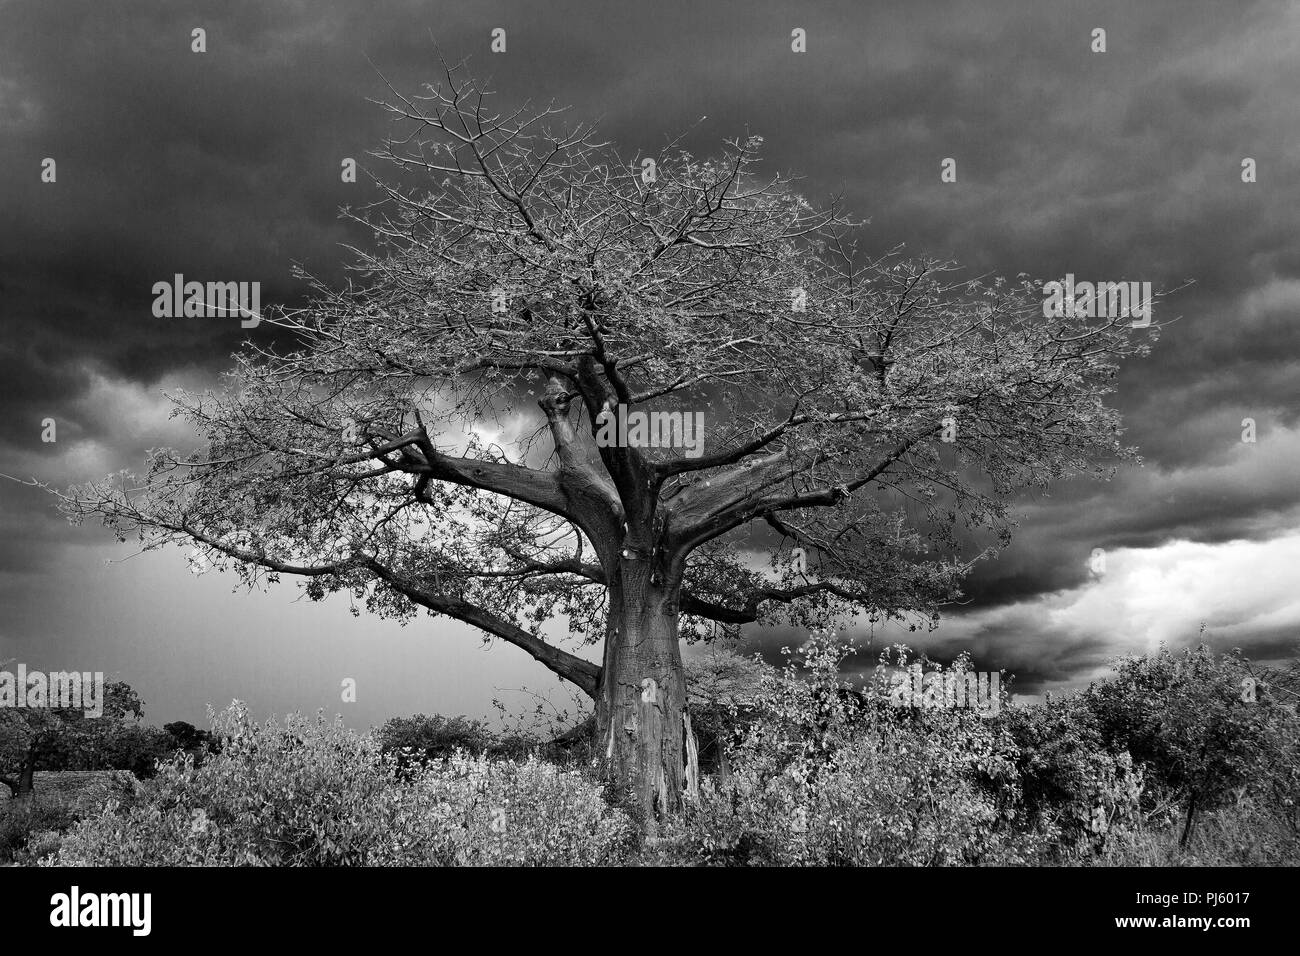 A large ancient Baobab stands before an approaching rainy season storm. Even these huge trees can be damaged in the more violent storms. - Stock Image